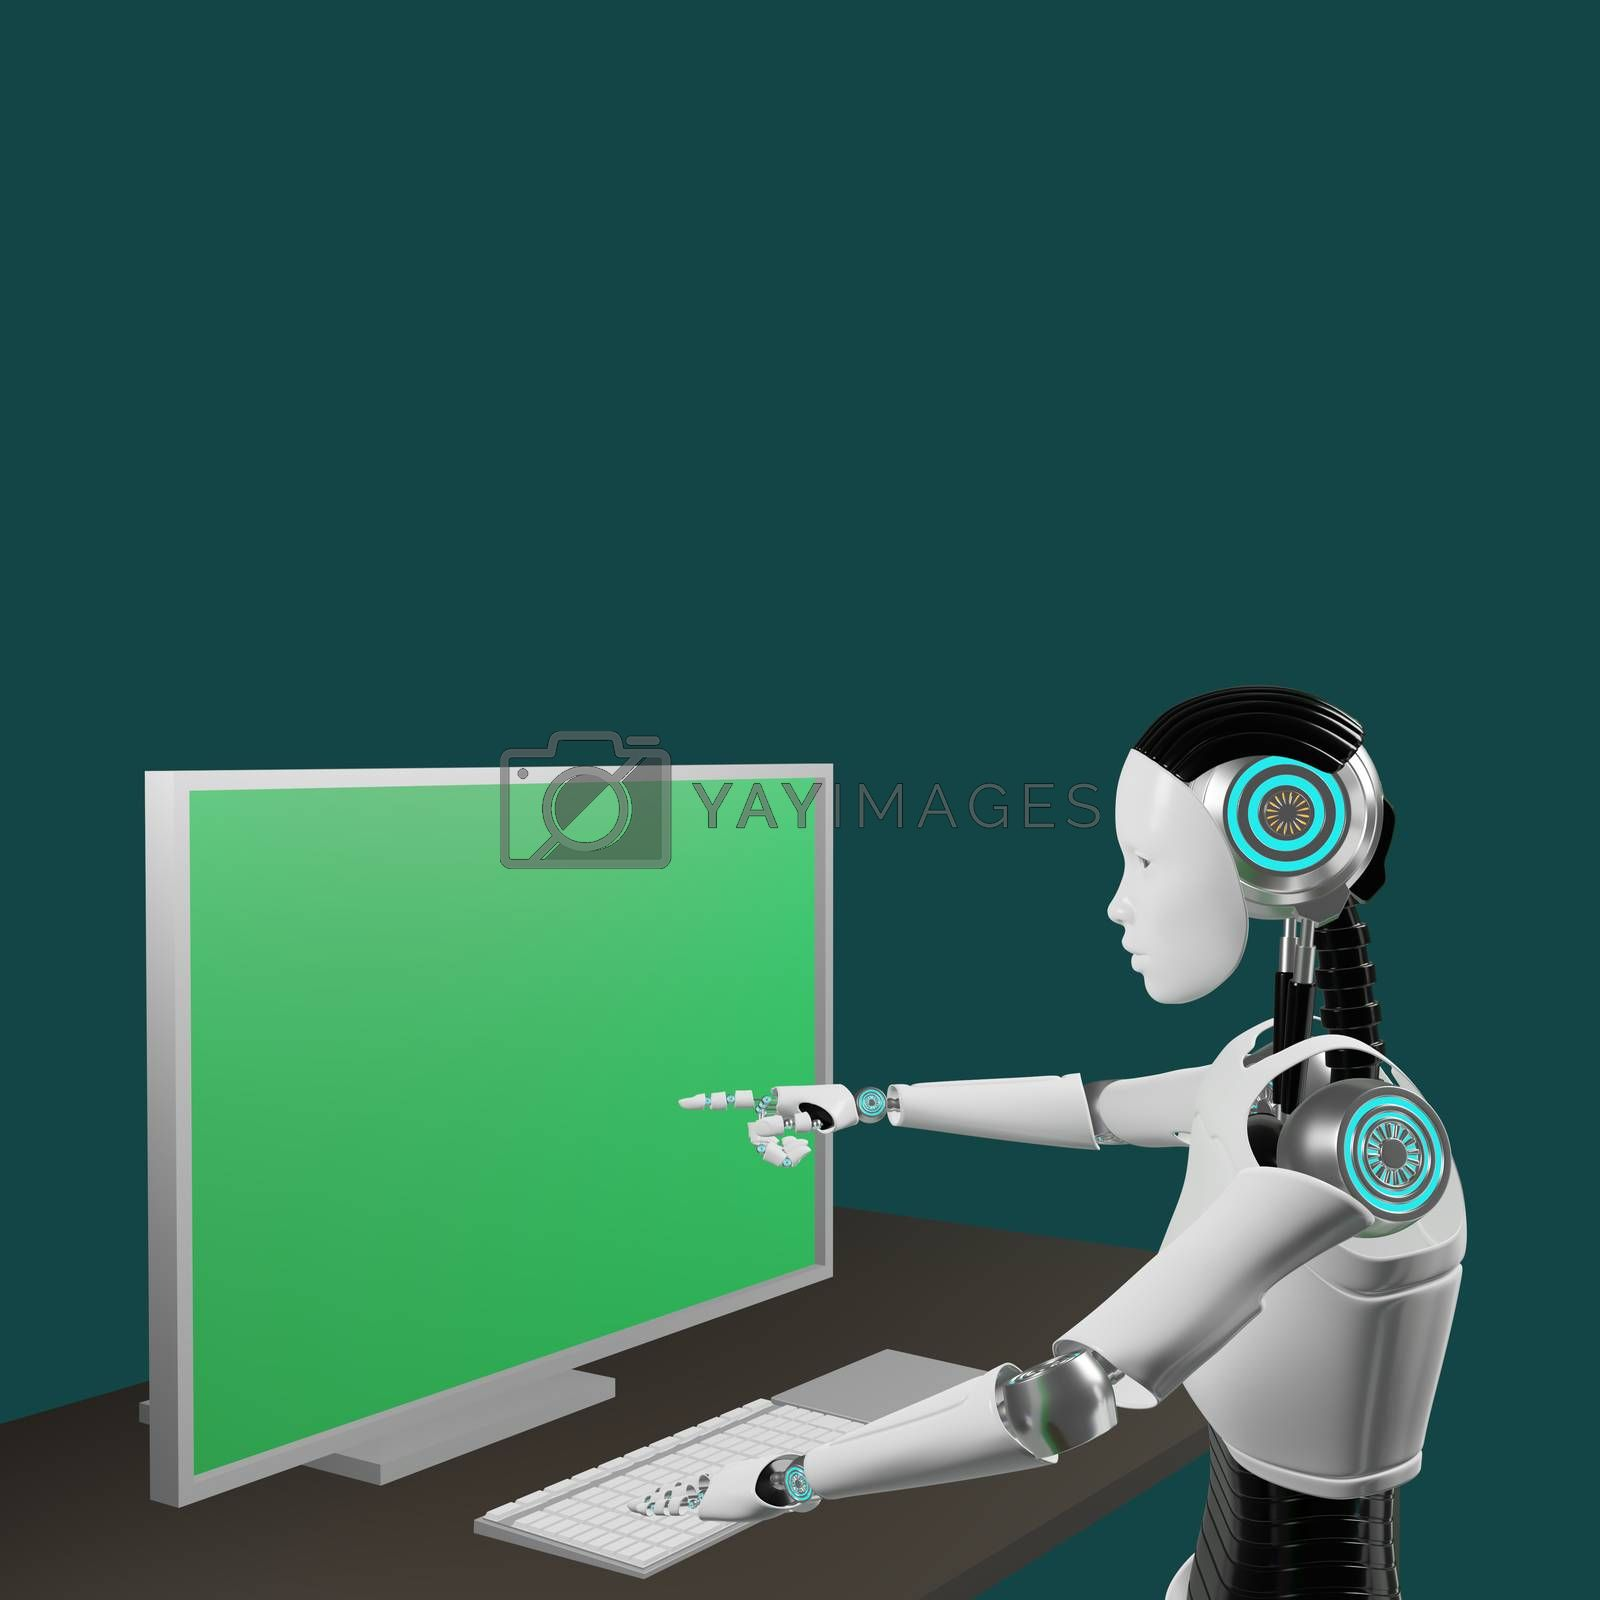 Royalty free image of Android is pointing at monitor of computer with green screen by eaglesky